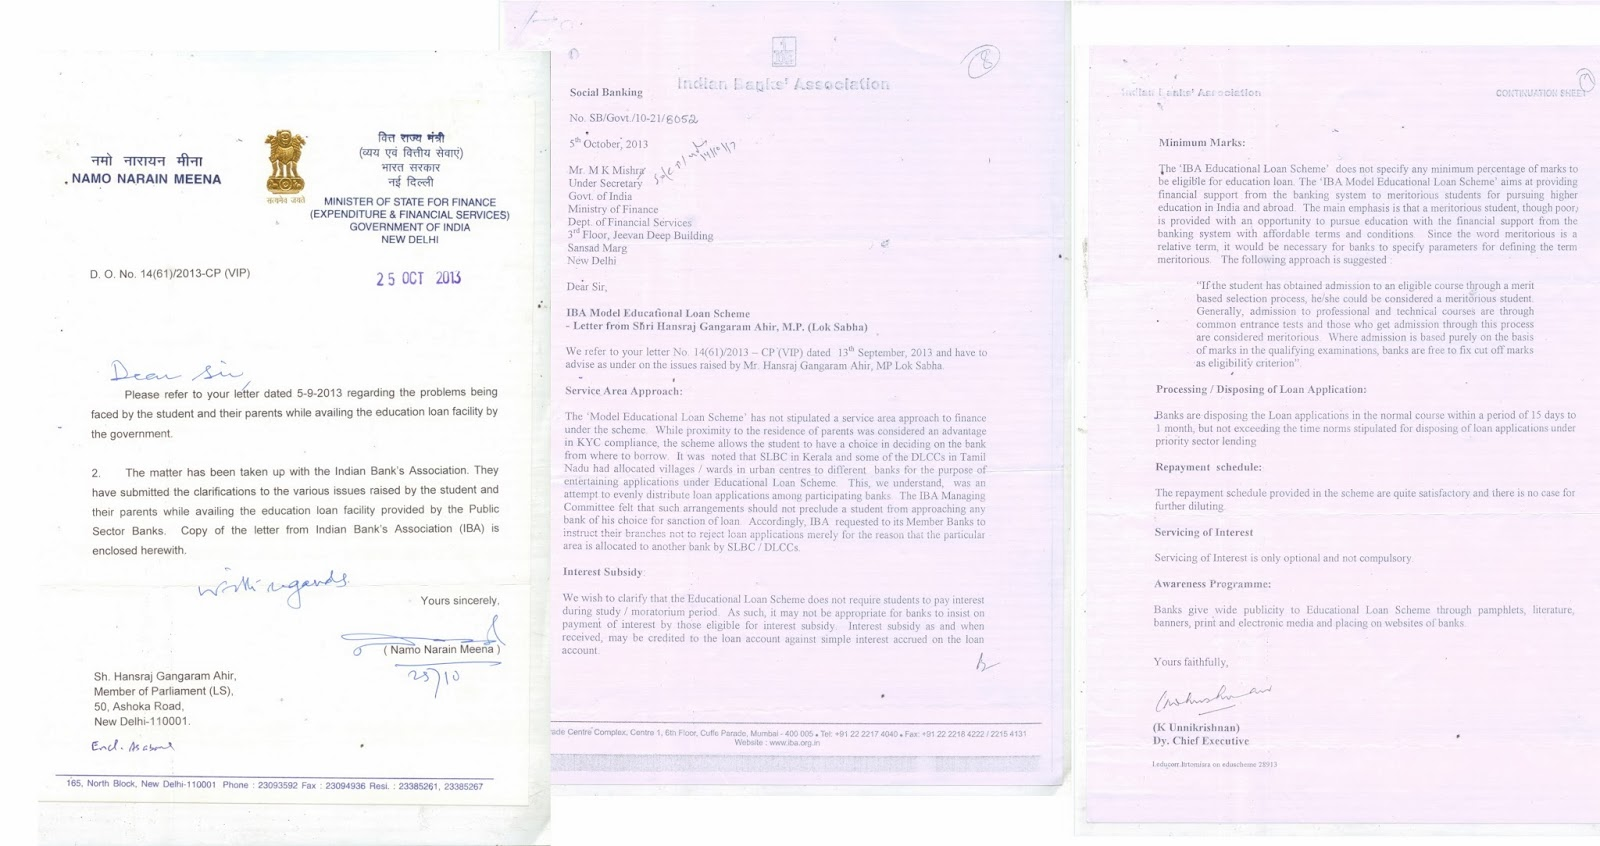 Request Letter To Bank Manager For Loan Disbursement